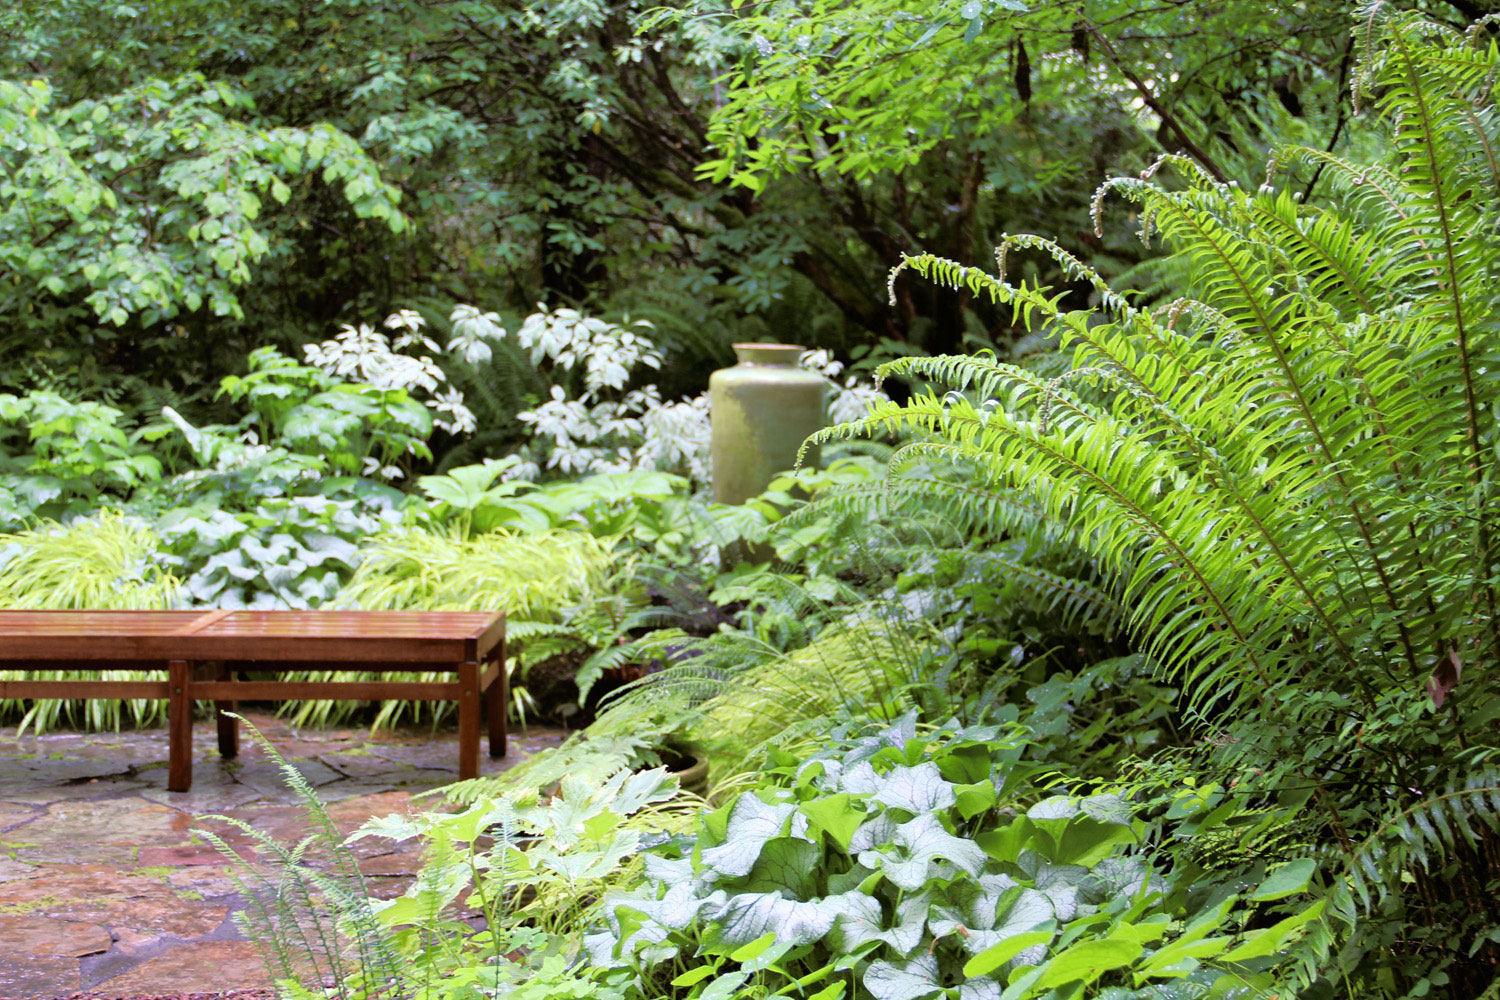 Fern Garden Ideas Best ferns for a low water garden sunset magazine planting care tips workwithnaturefo